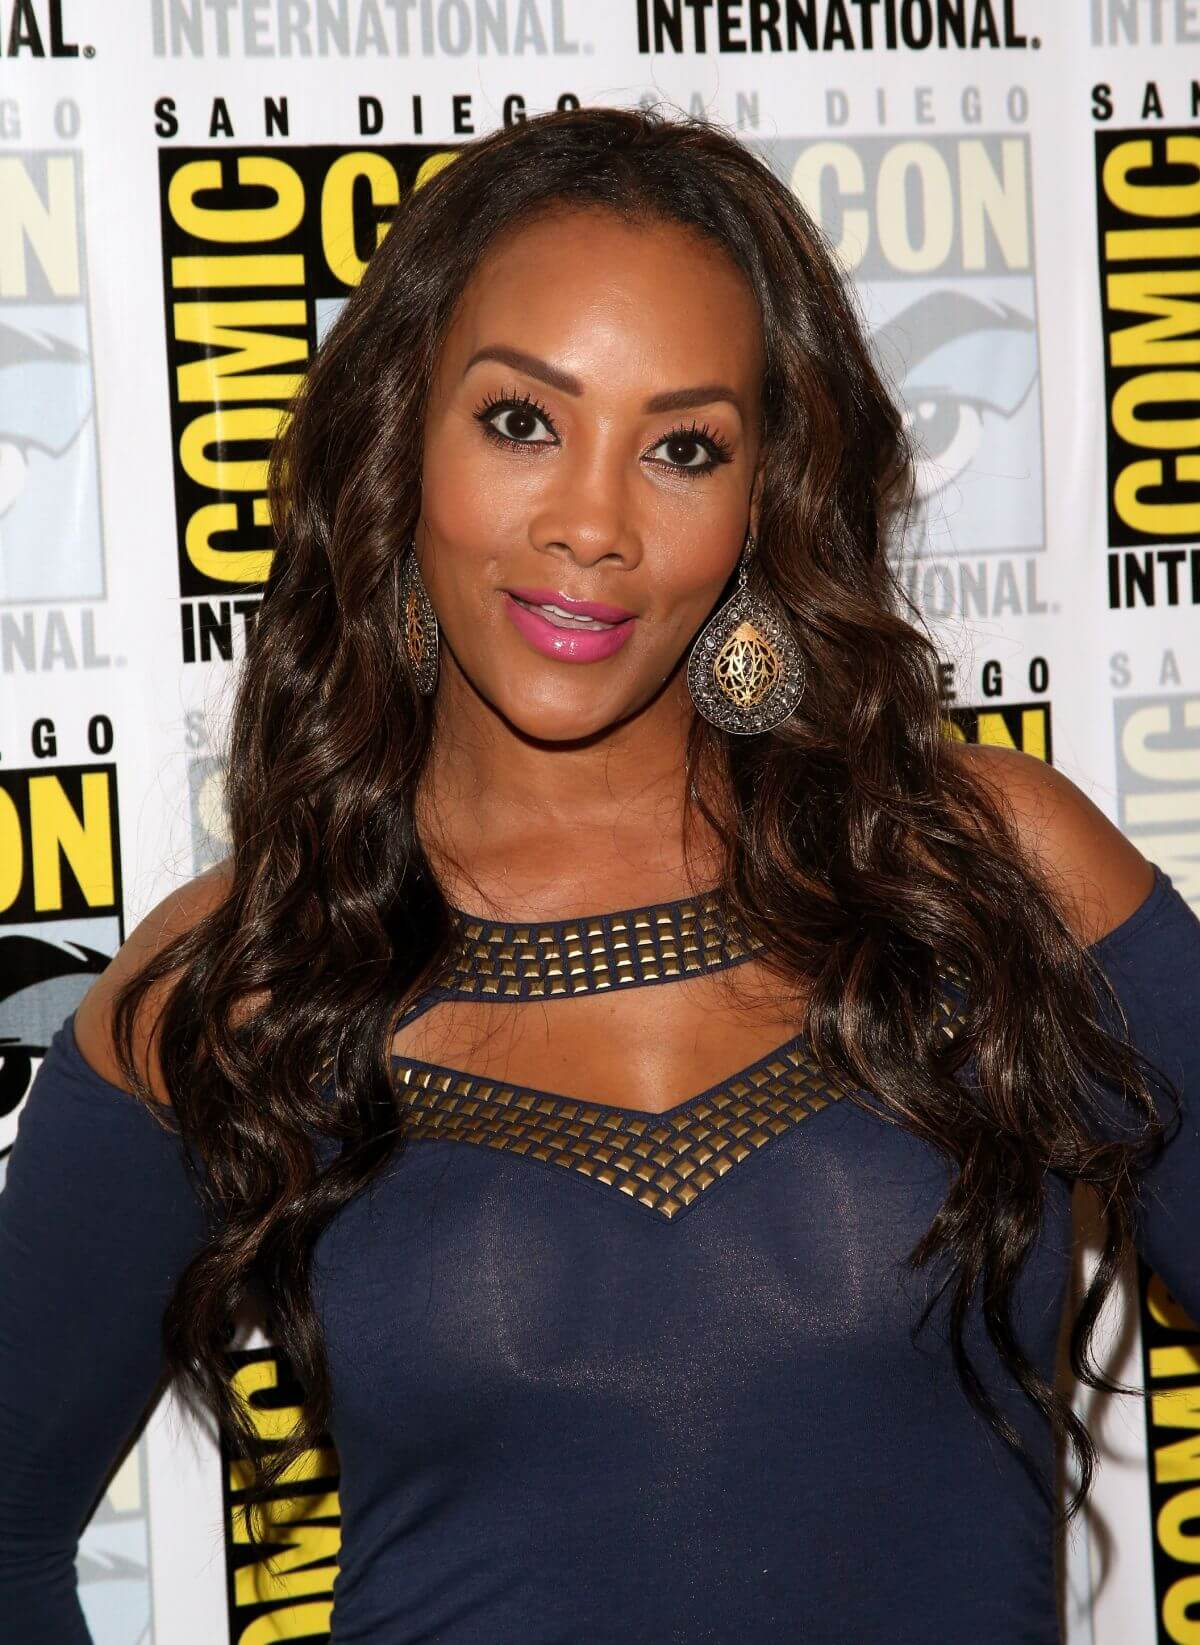 Vivica A. Fox hot busty pictures